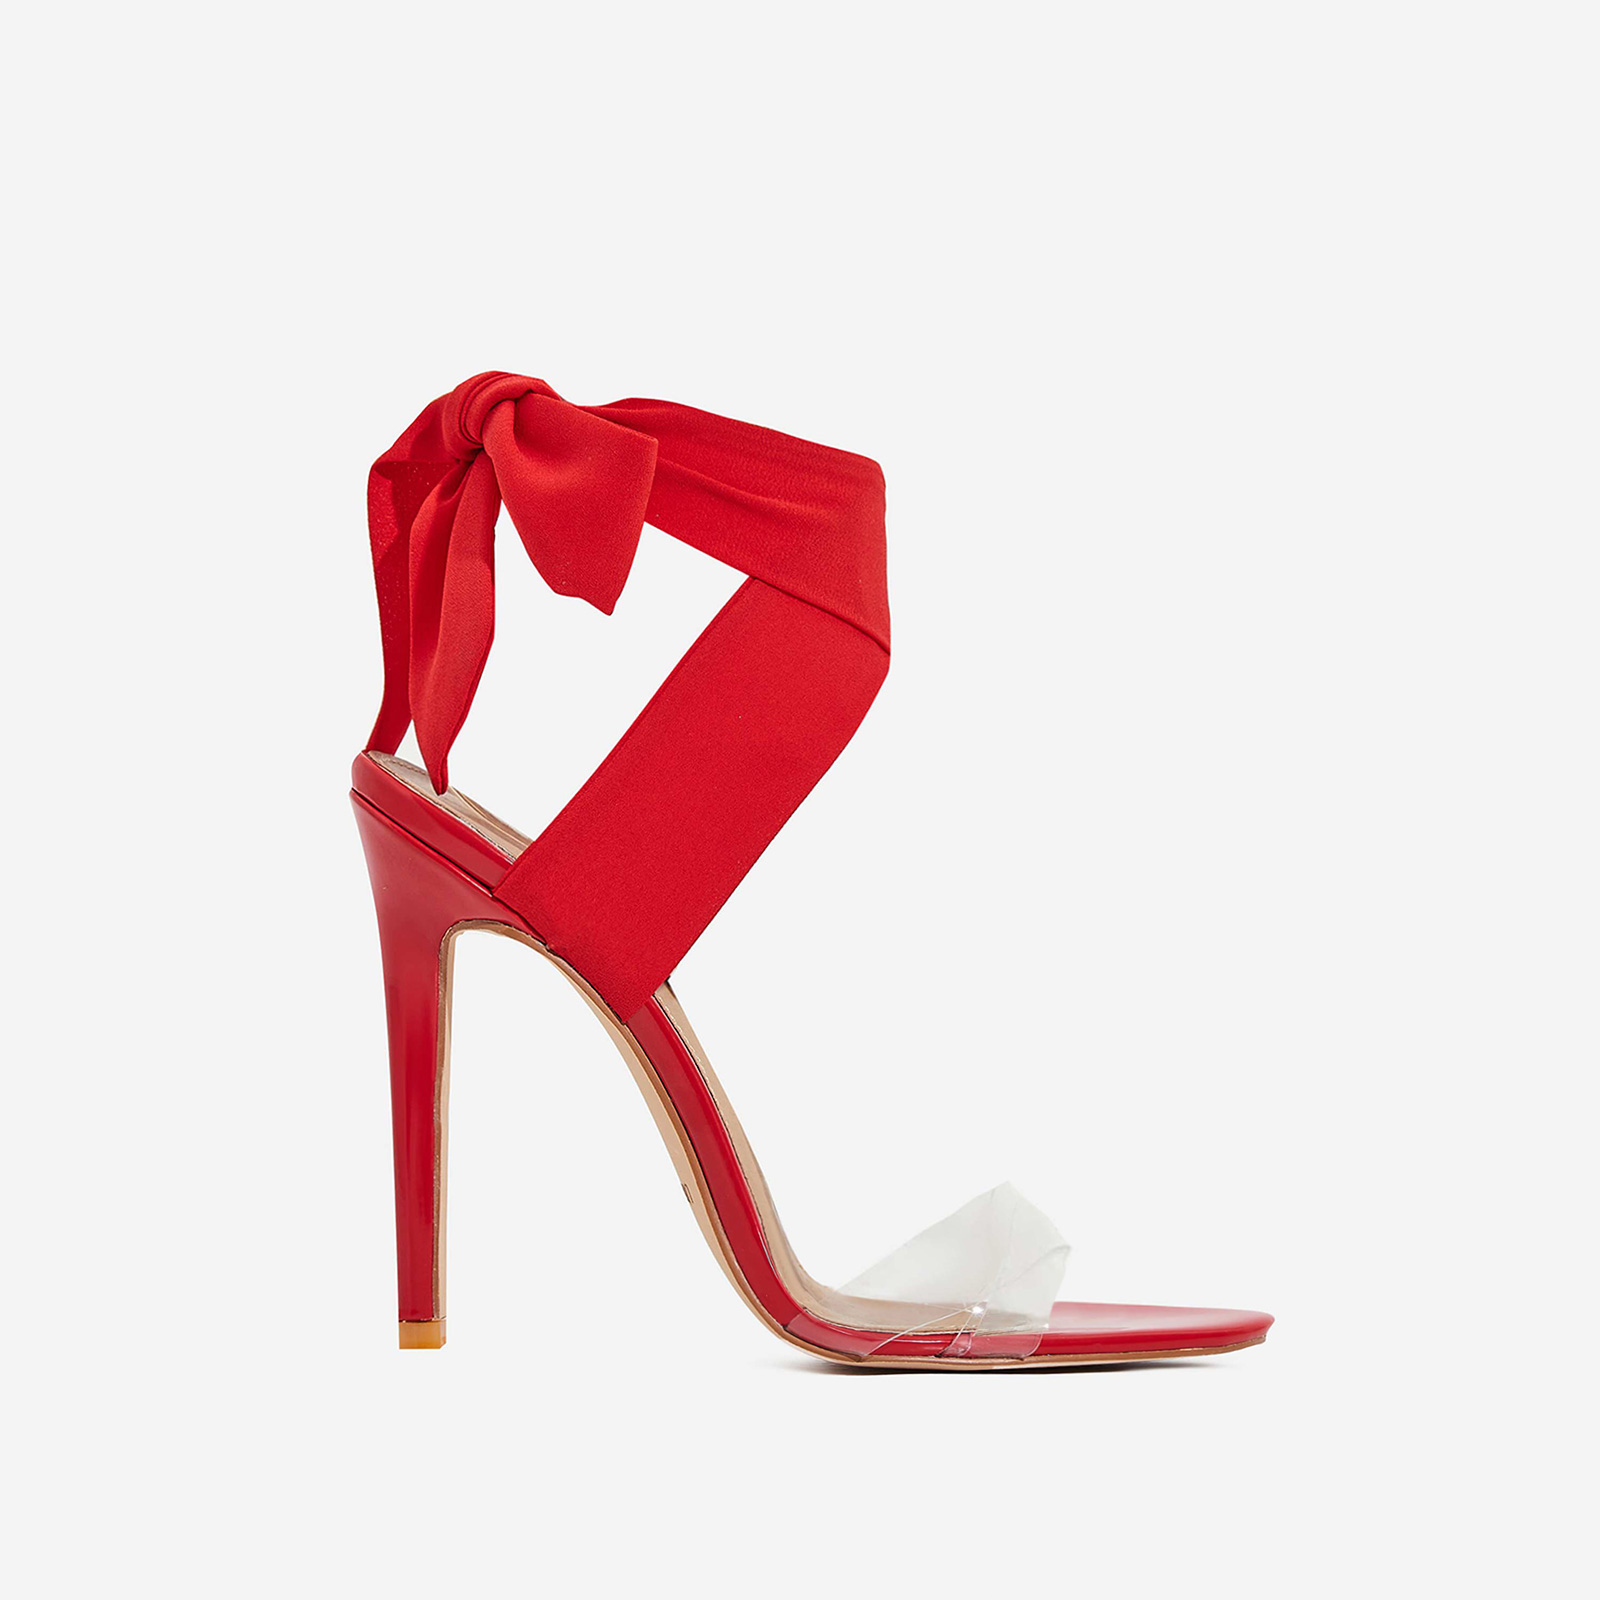 Zabi Ribbon Lace Up Perspex Heel In Red Pat